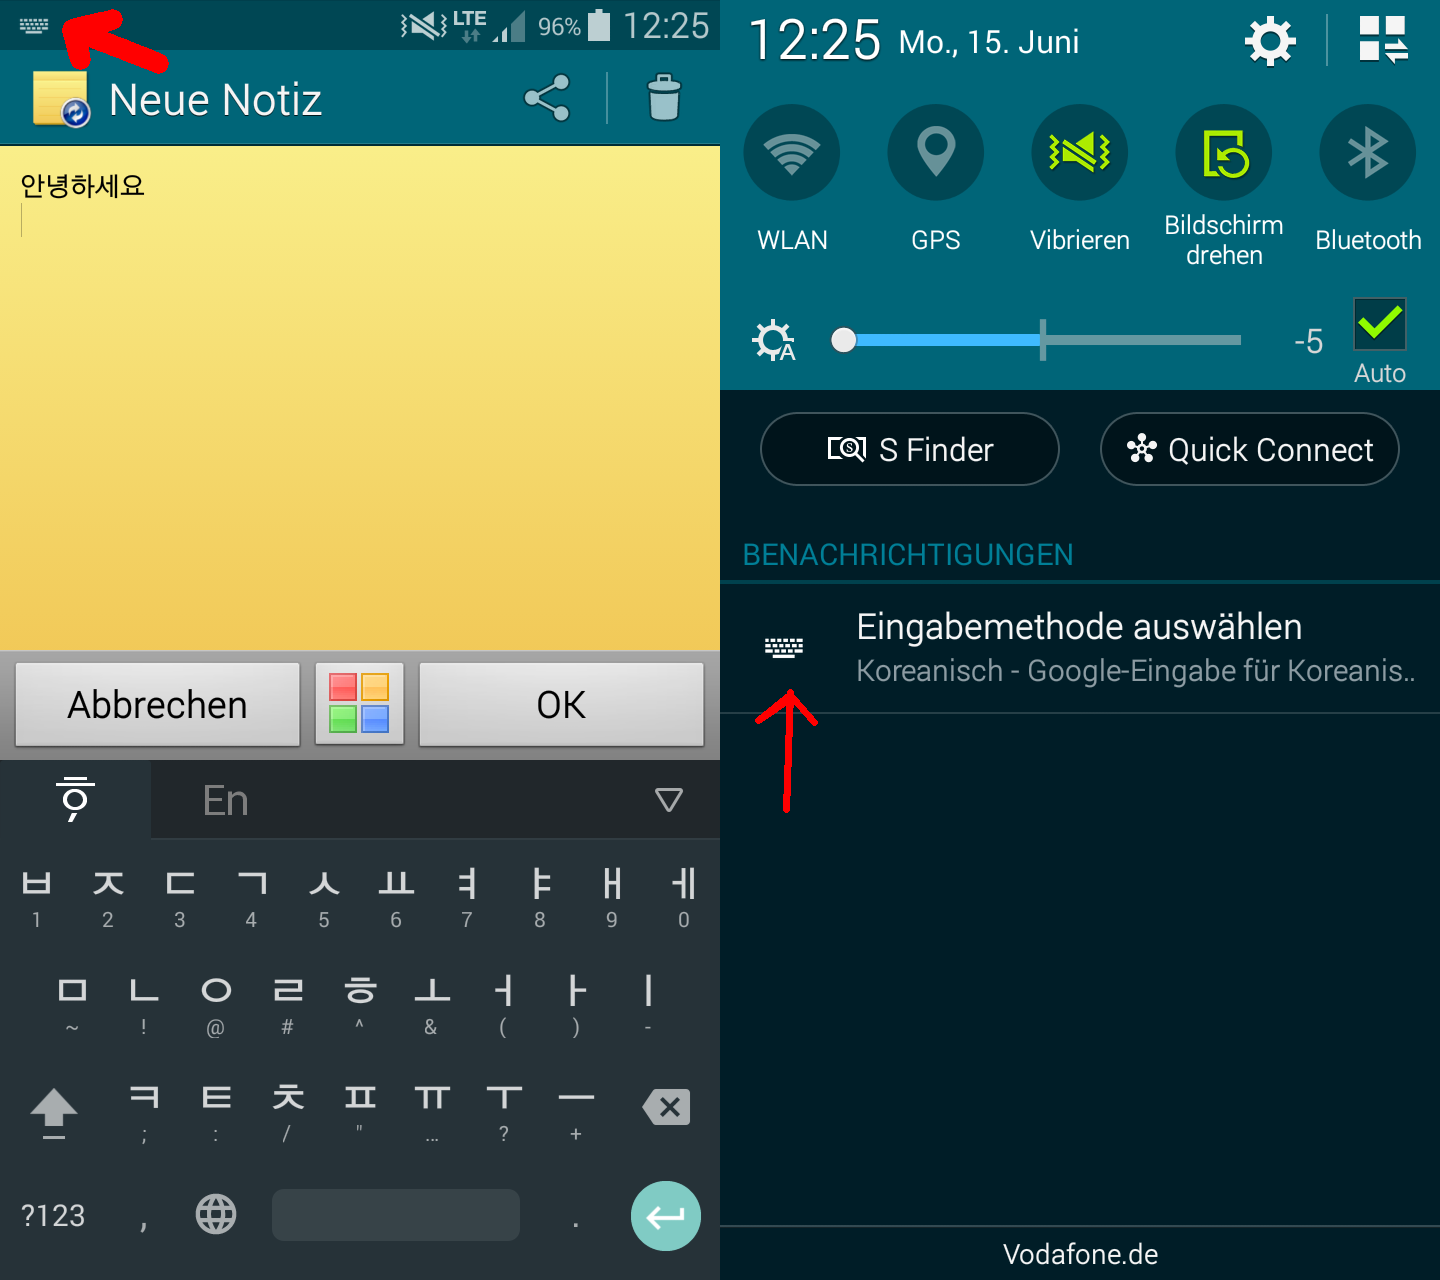 How to install Korean Hangul keyboard on Windows, Android and iPhone